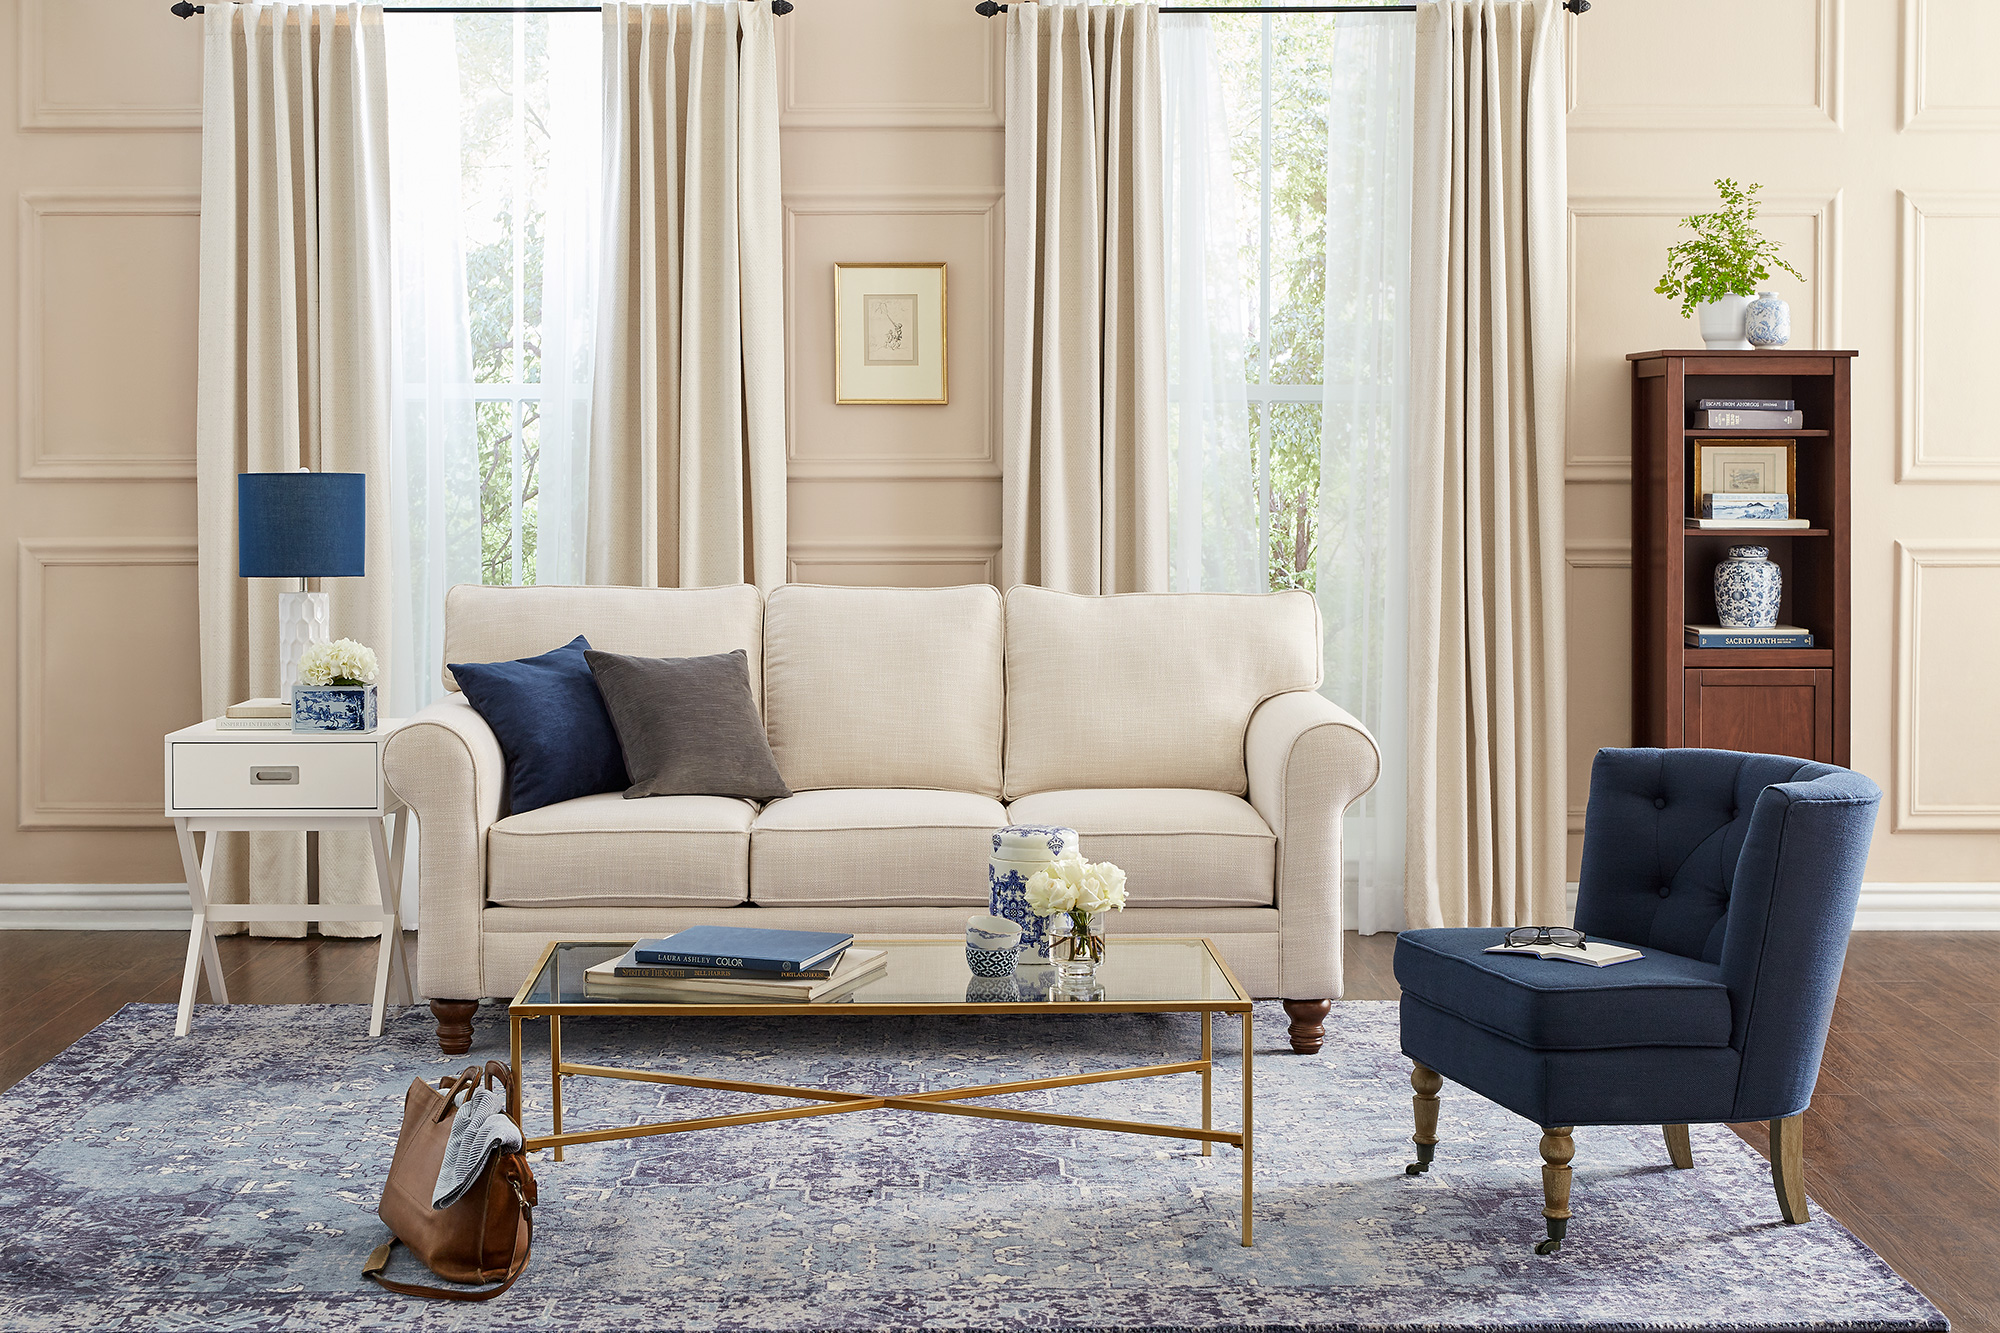 now off gabby viola accent chest sch ravenna home living lovell table target launches its own furnishings collection take peek the affordable items red entryway dorm ping console